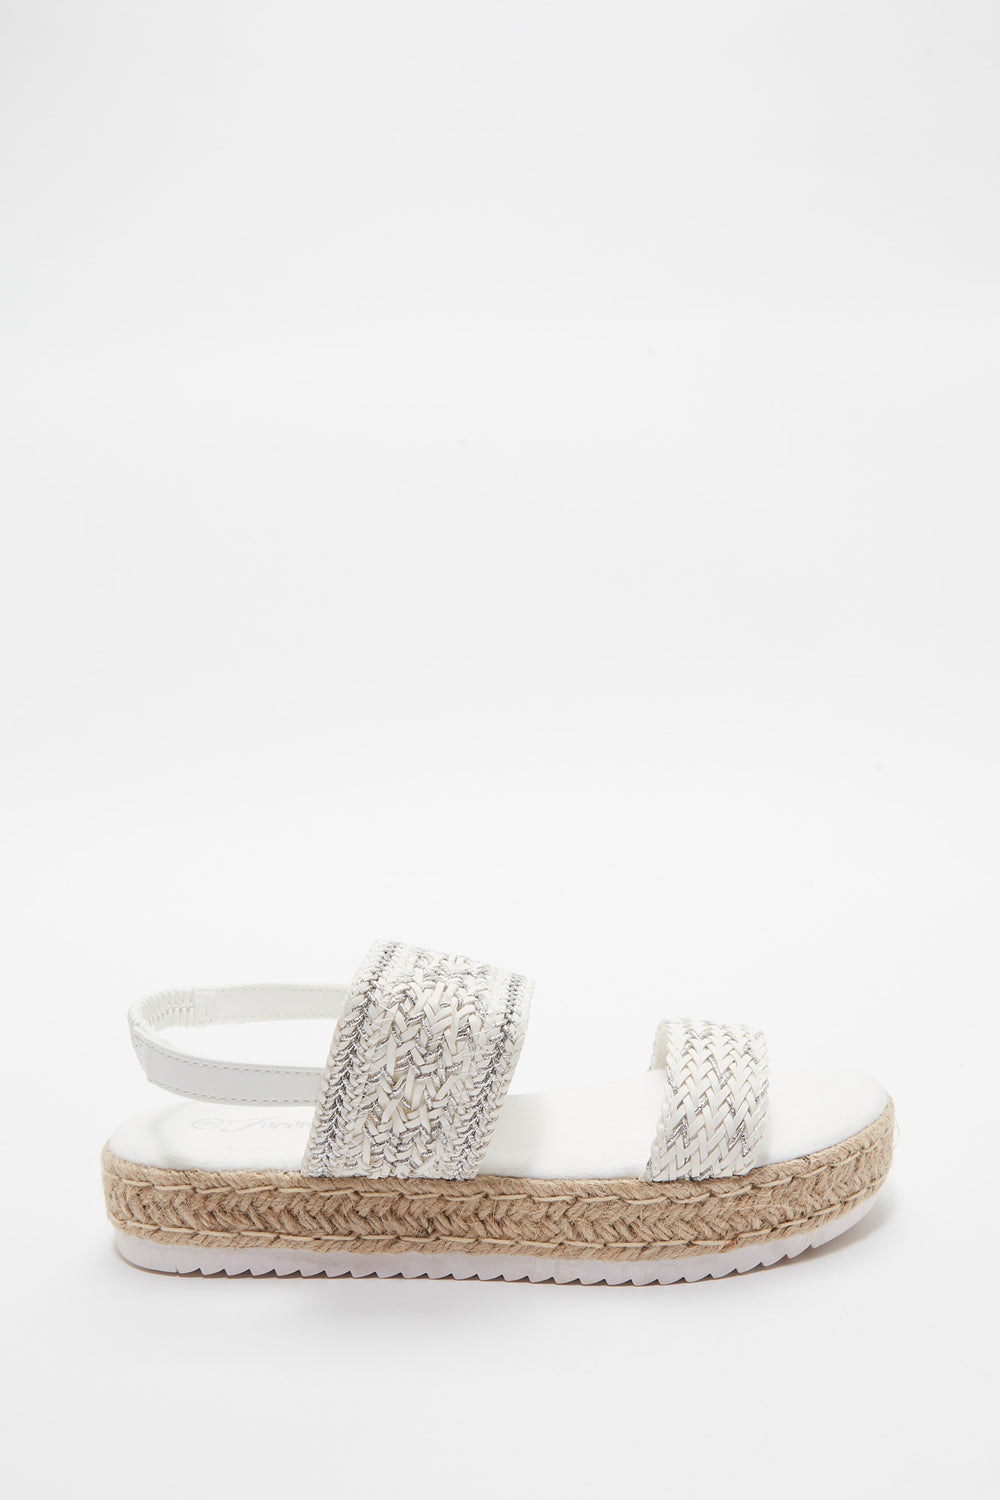 Braided Rope Flatform Sling Sandal White